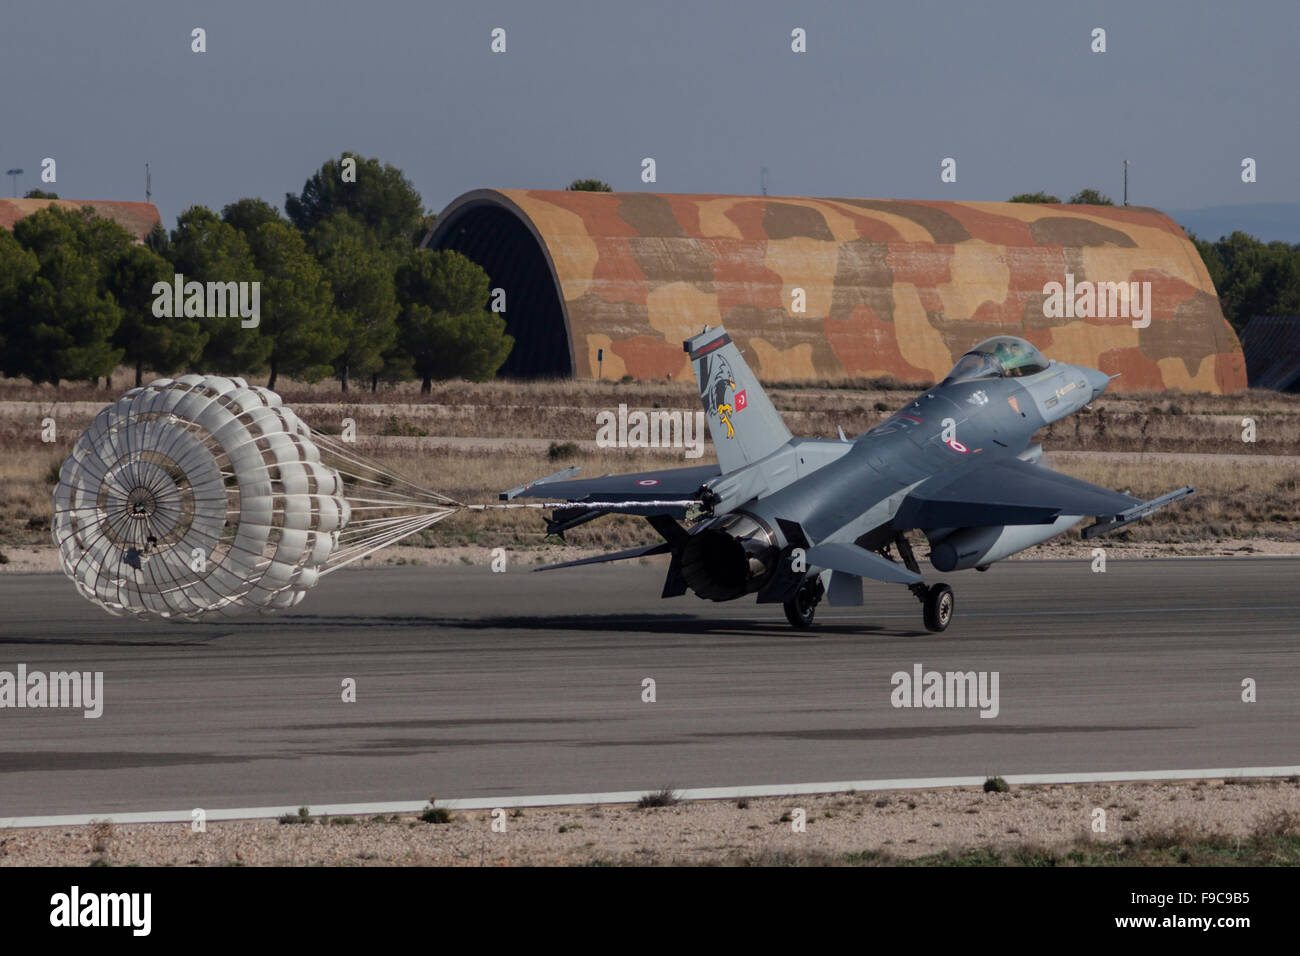 A Turkish Air Force F-16D deploys drag chute for landing during NATO's Exercise Trident Juncture, Albacete, - Stock Image